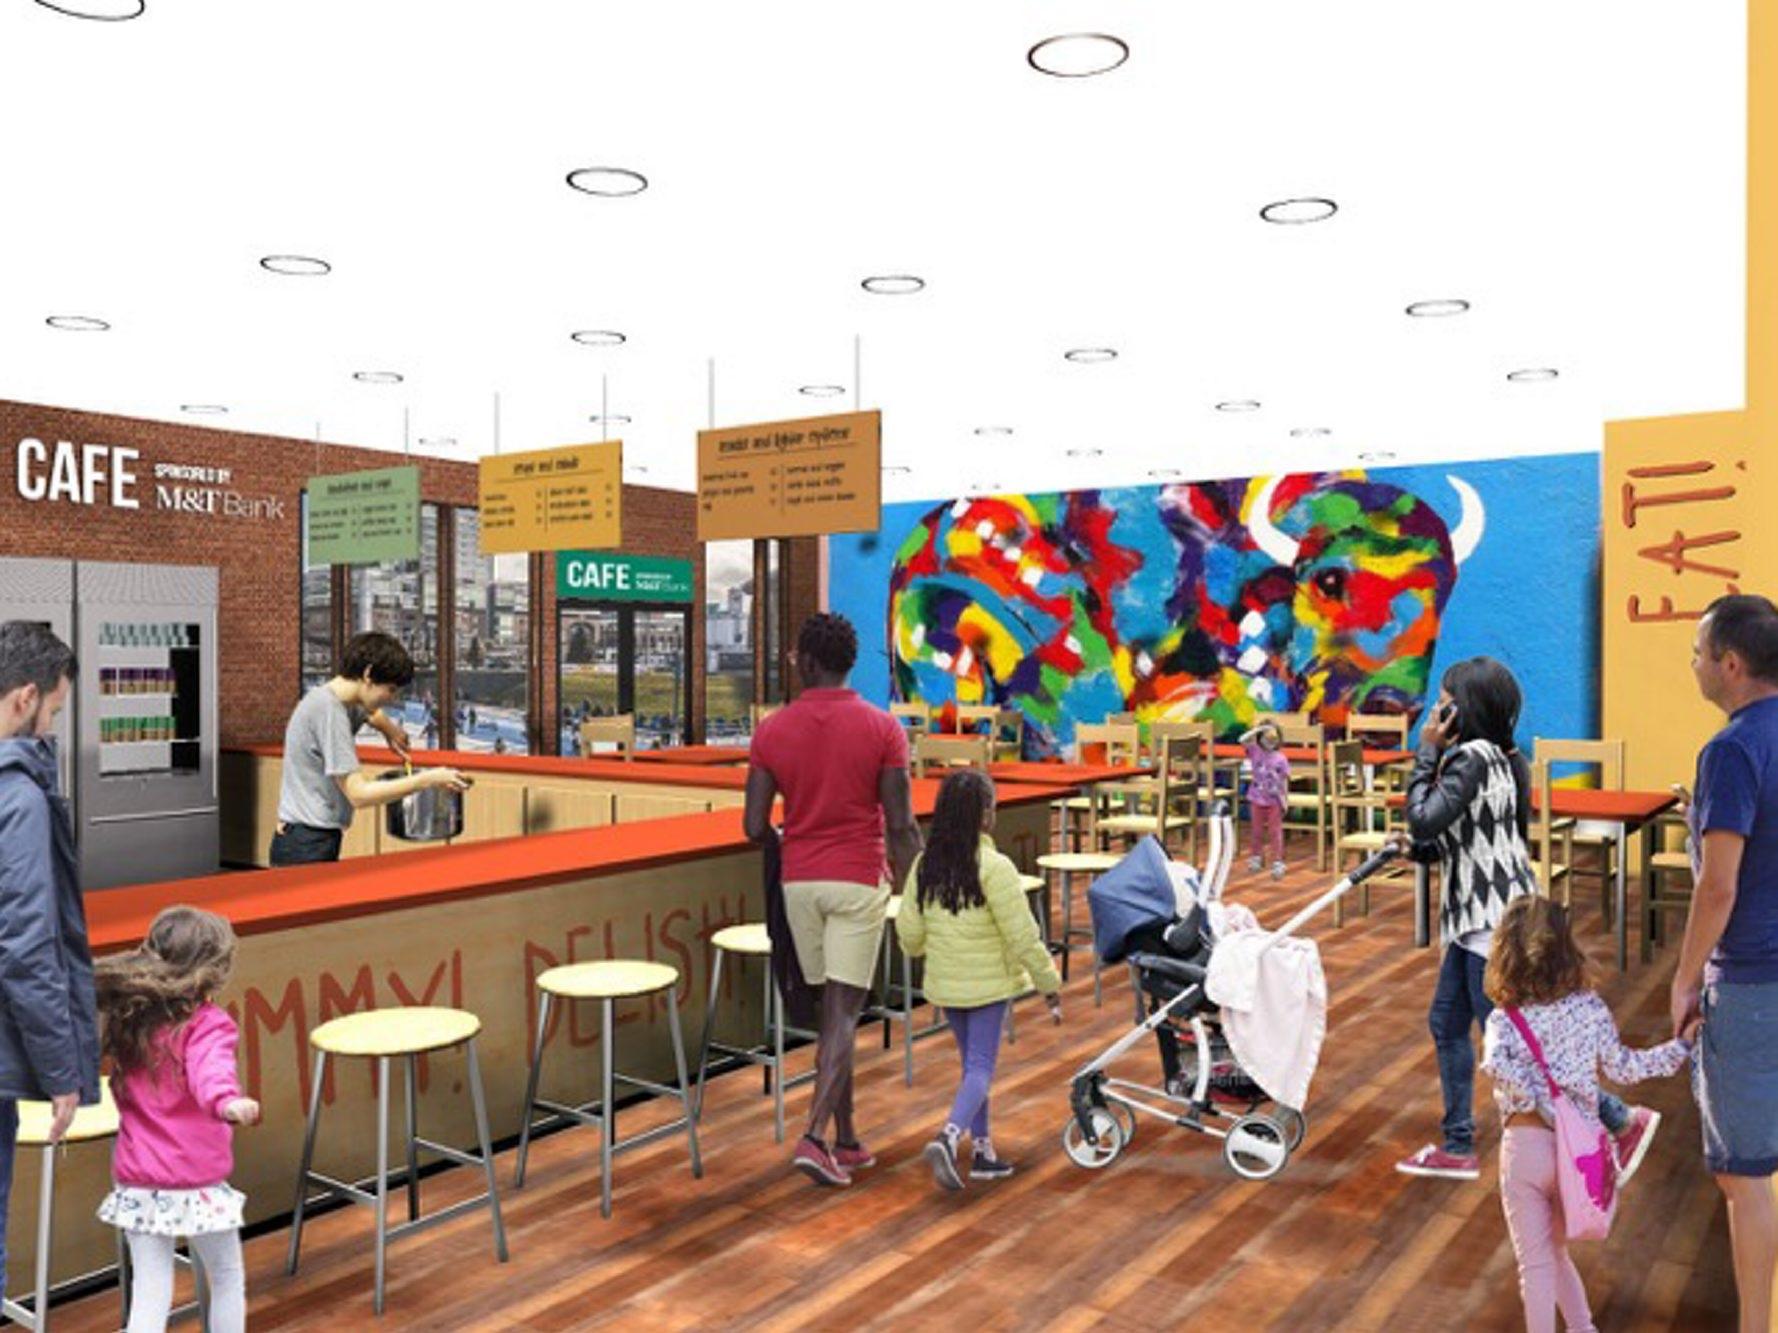 A rendering of the proposed cafe at the future Explore & More Museum at Canalside.